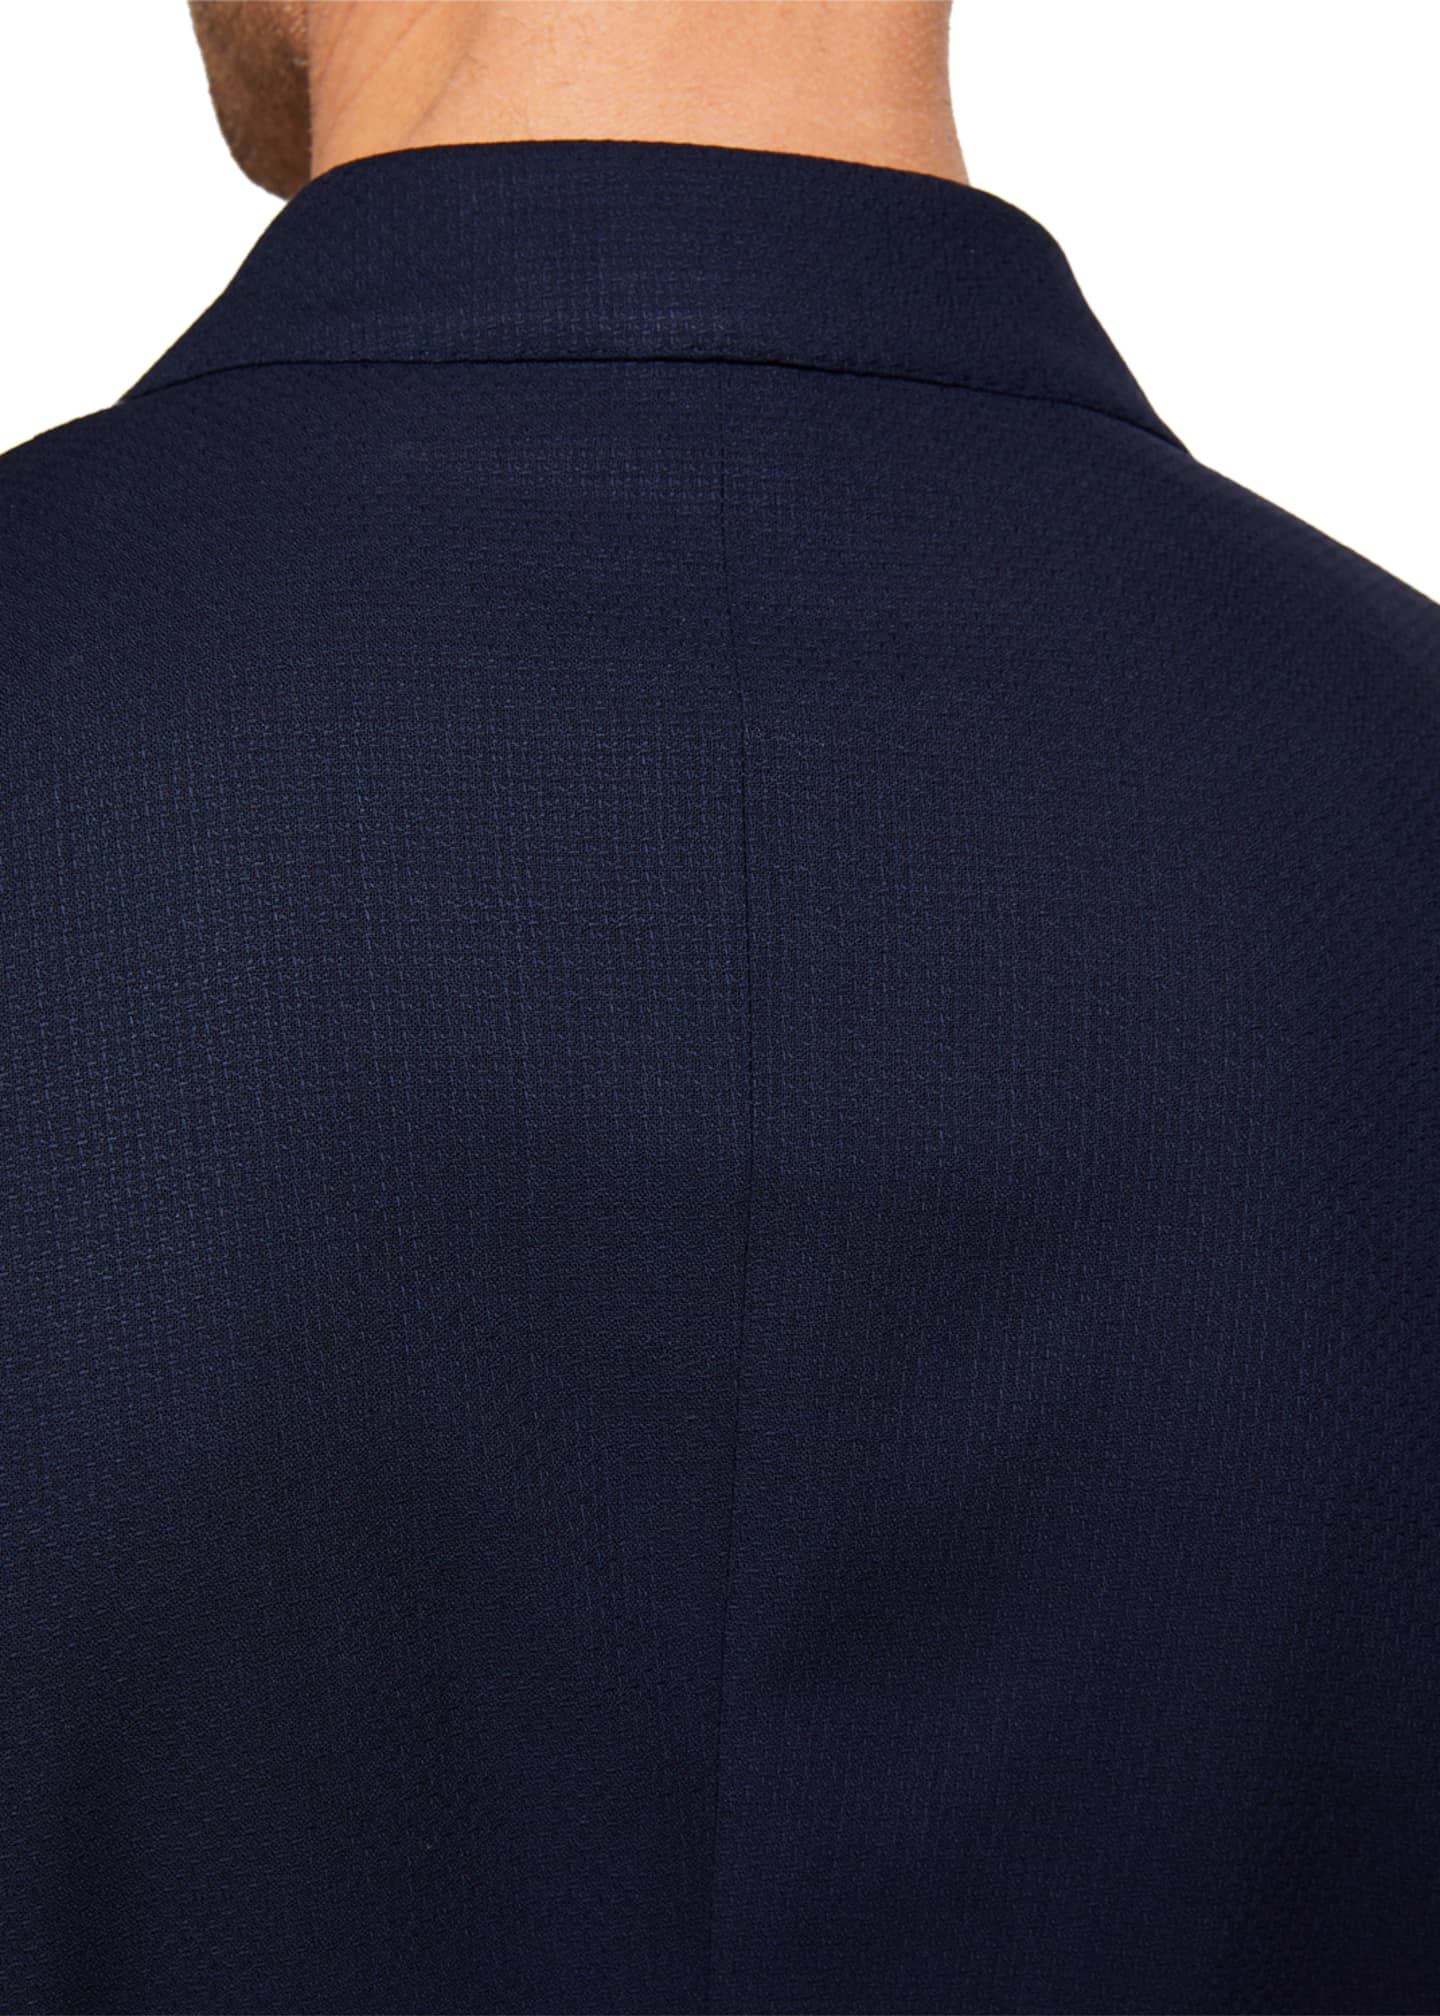 Image 3 of 3: Men's Packaway Wool Two-Button Jacket